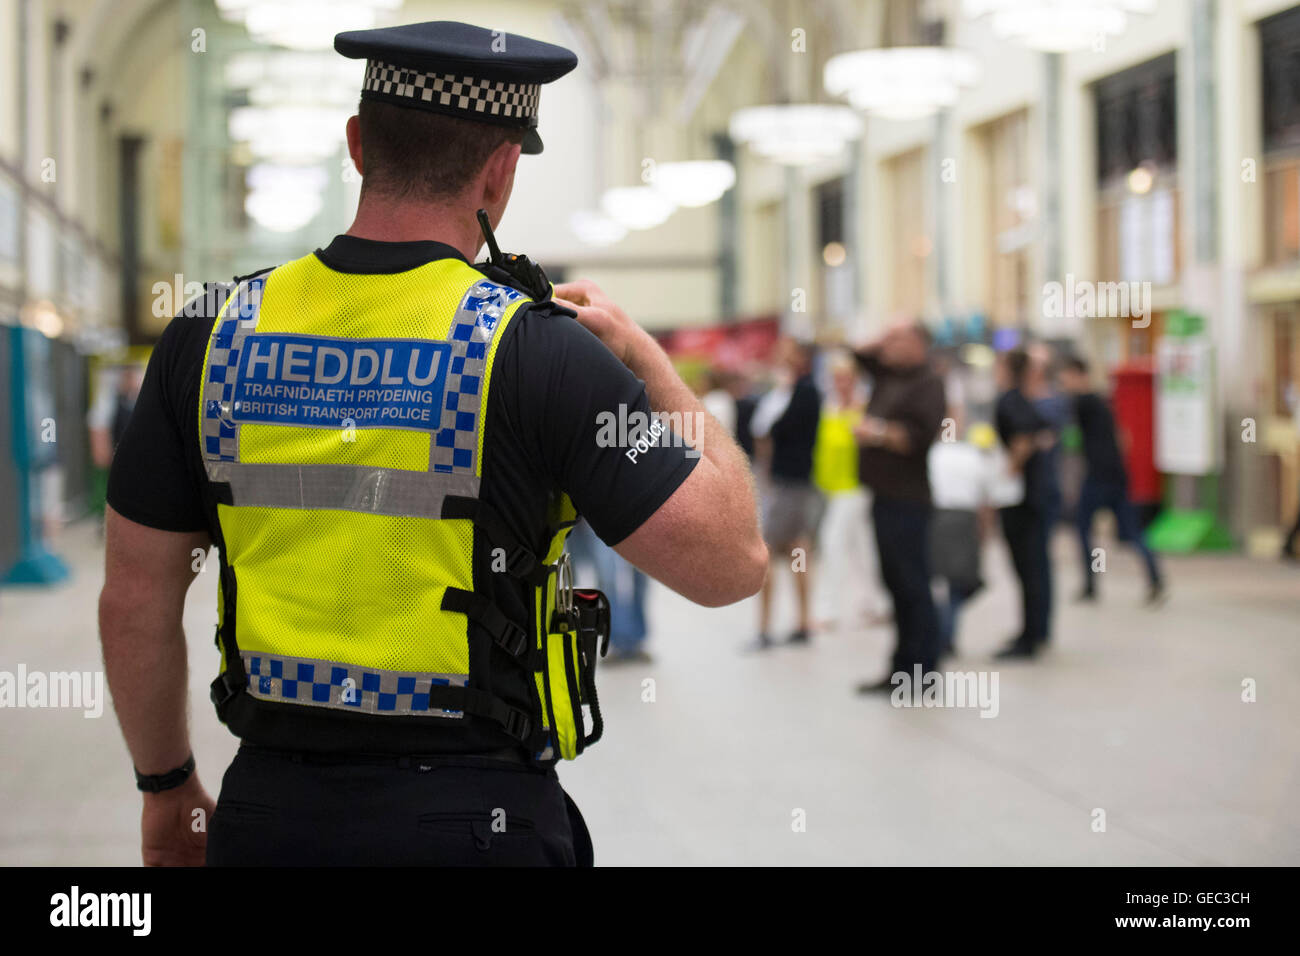 British Transport Police (BTP) at Cardiff railway train station in Cardiff, Wales, UK. - Stock Image